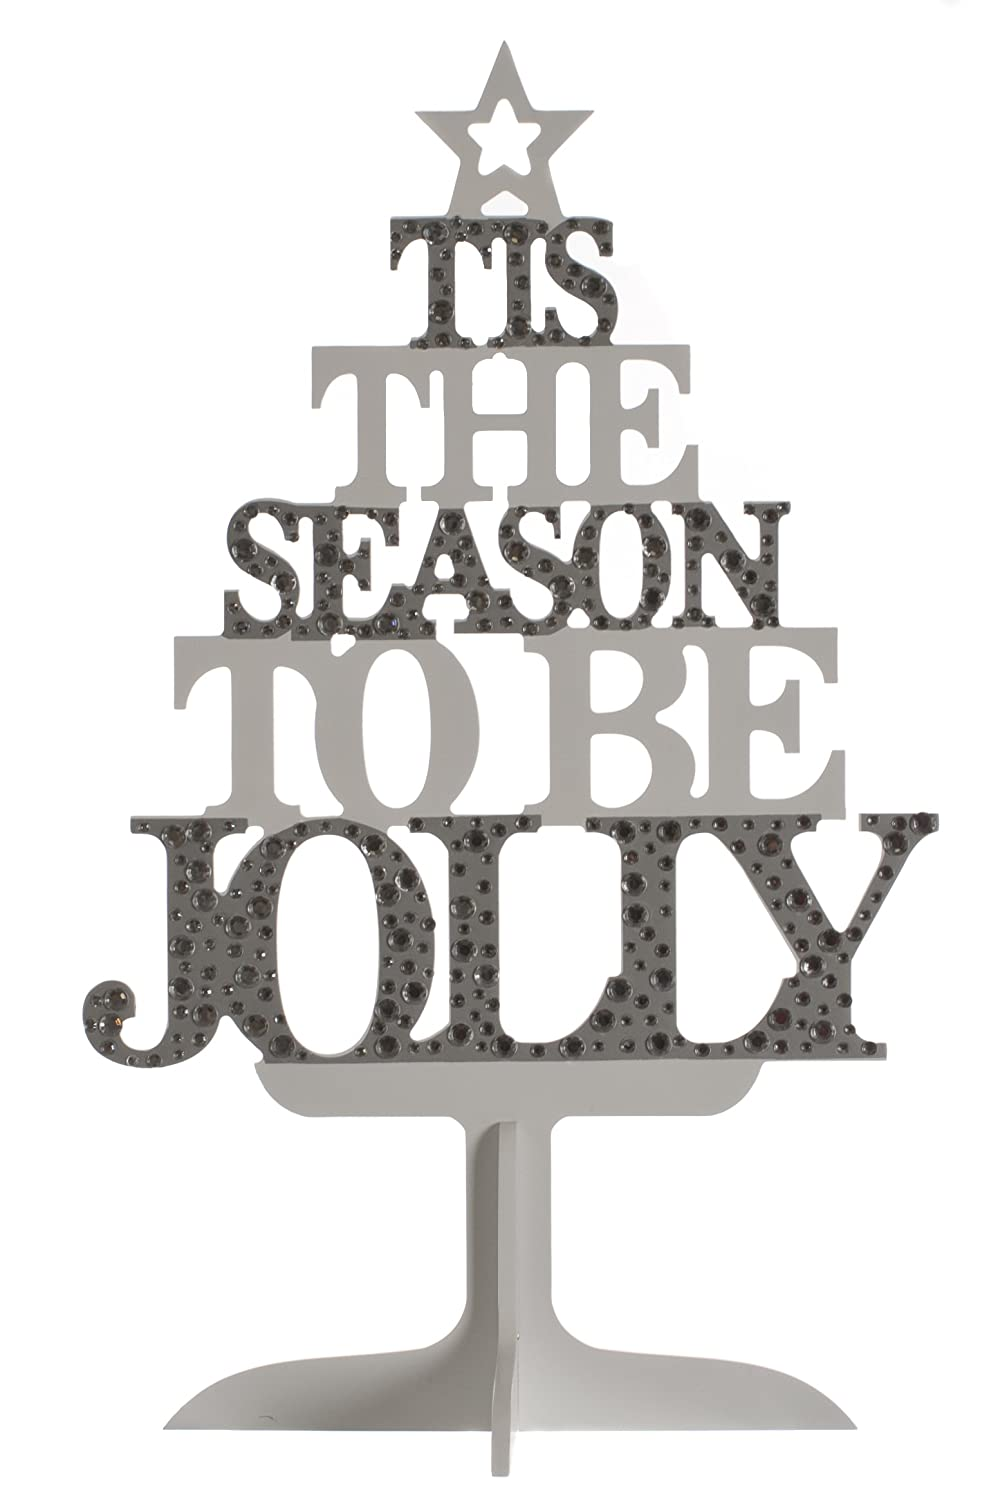 FESTIVE PRODUCTIONS 800643 45Cm Silver And White Wooden Text Tree